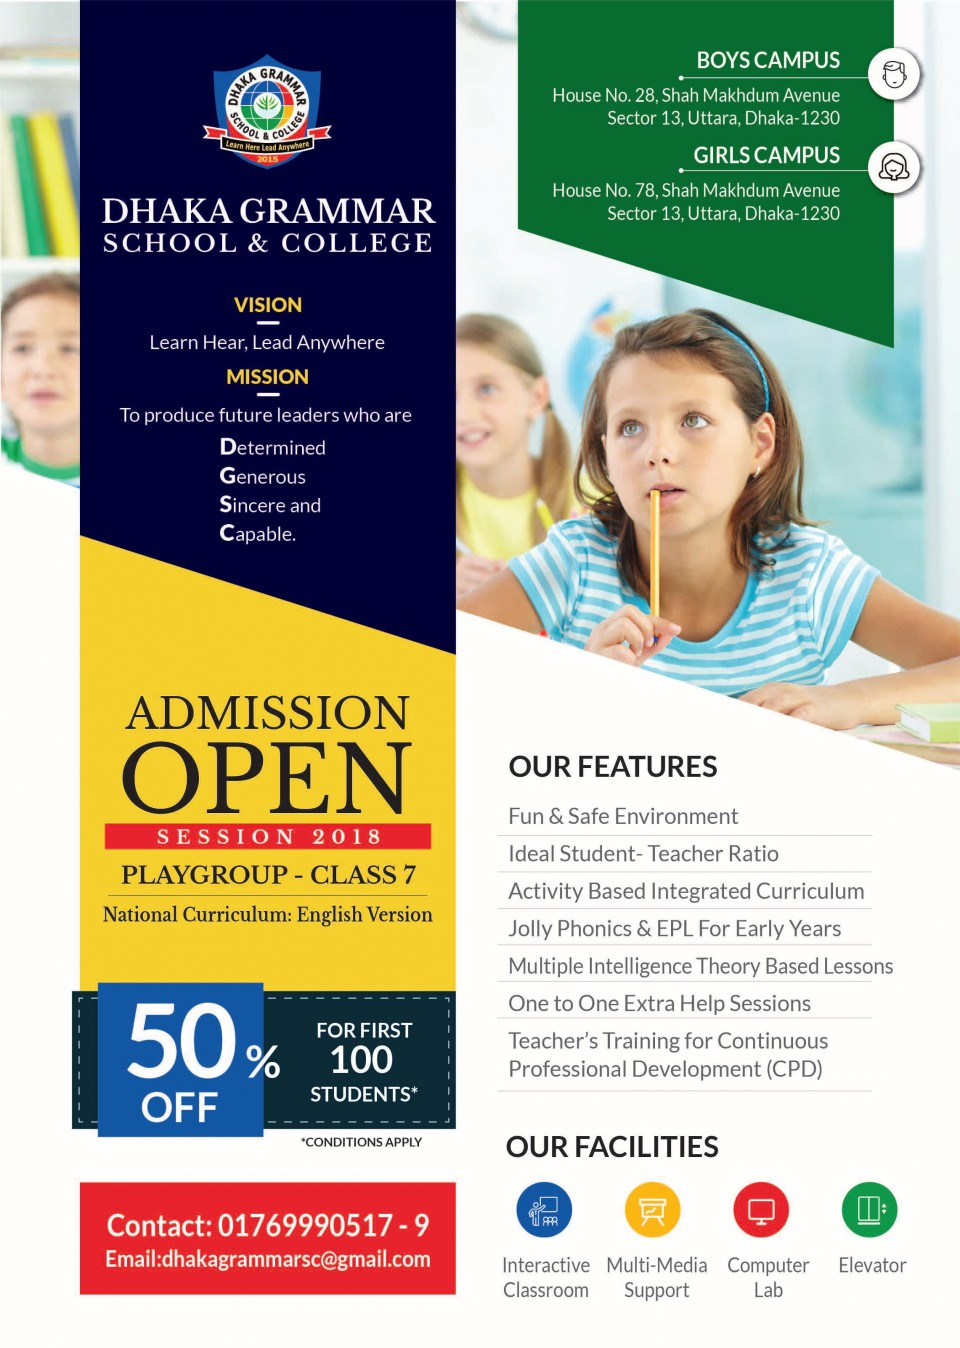 001 Outstanding School Open House Flyer Template Highest Clarity  Free Microsoft960